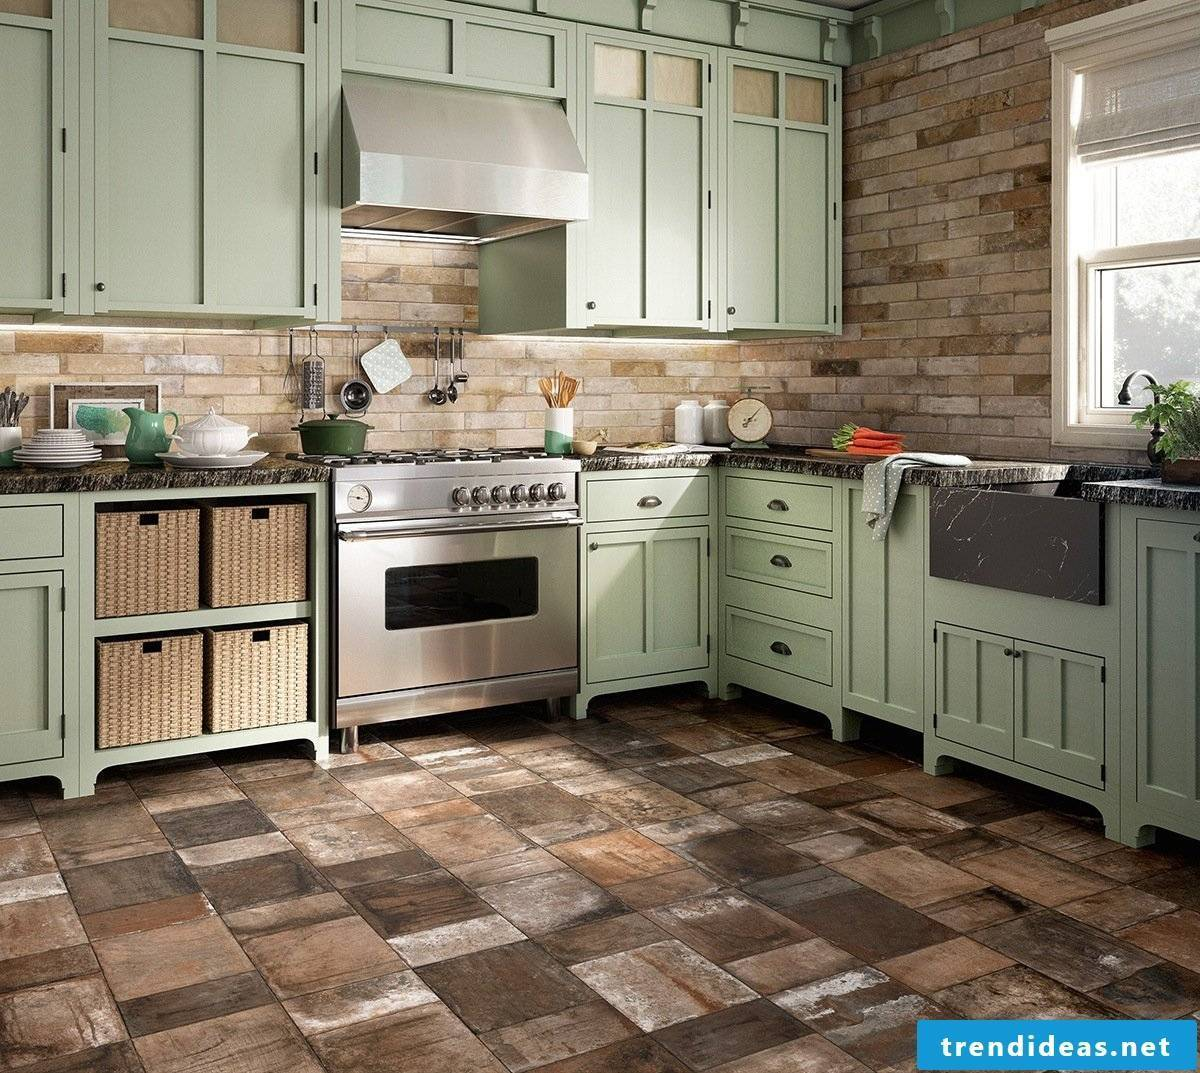 Pastel kitchen in country style- Great combination with stones